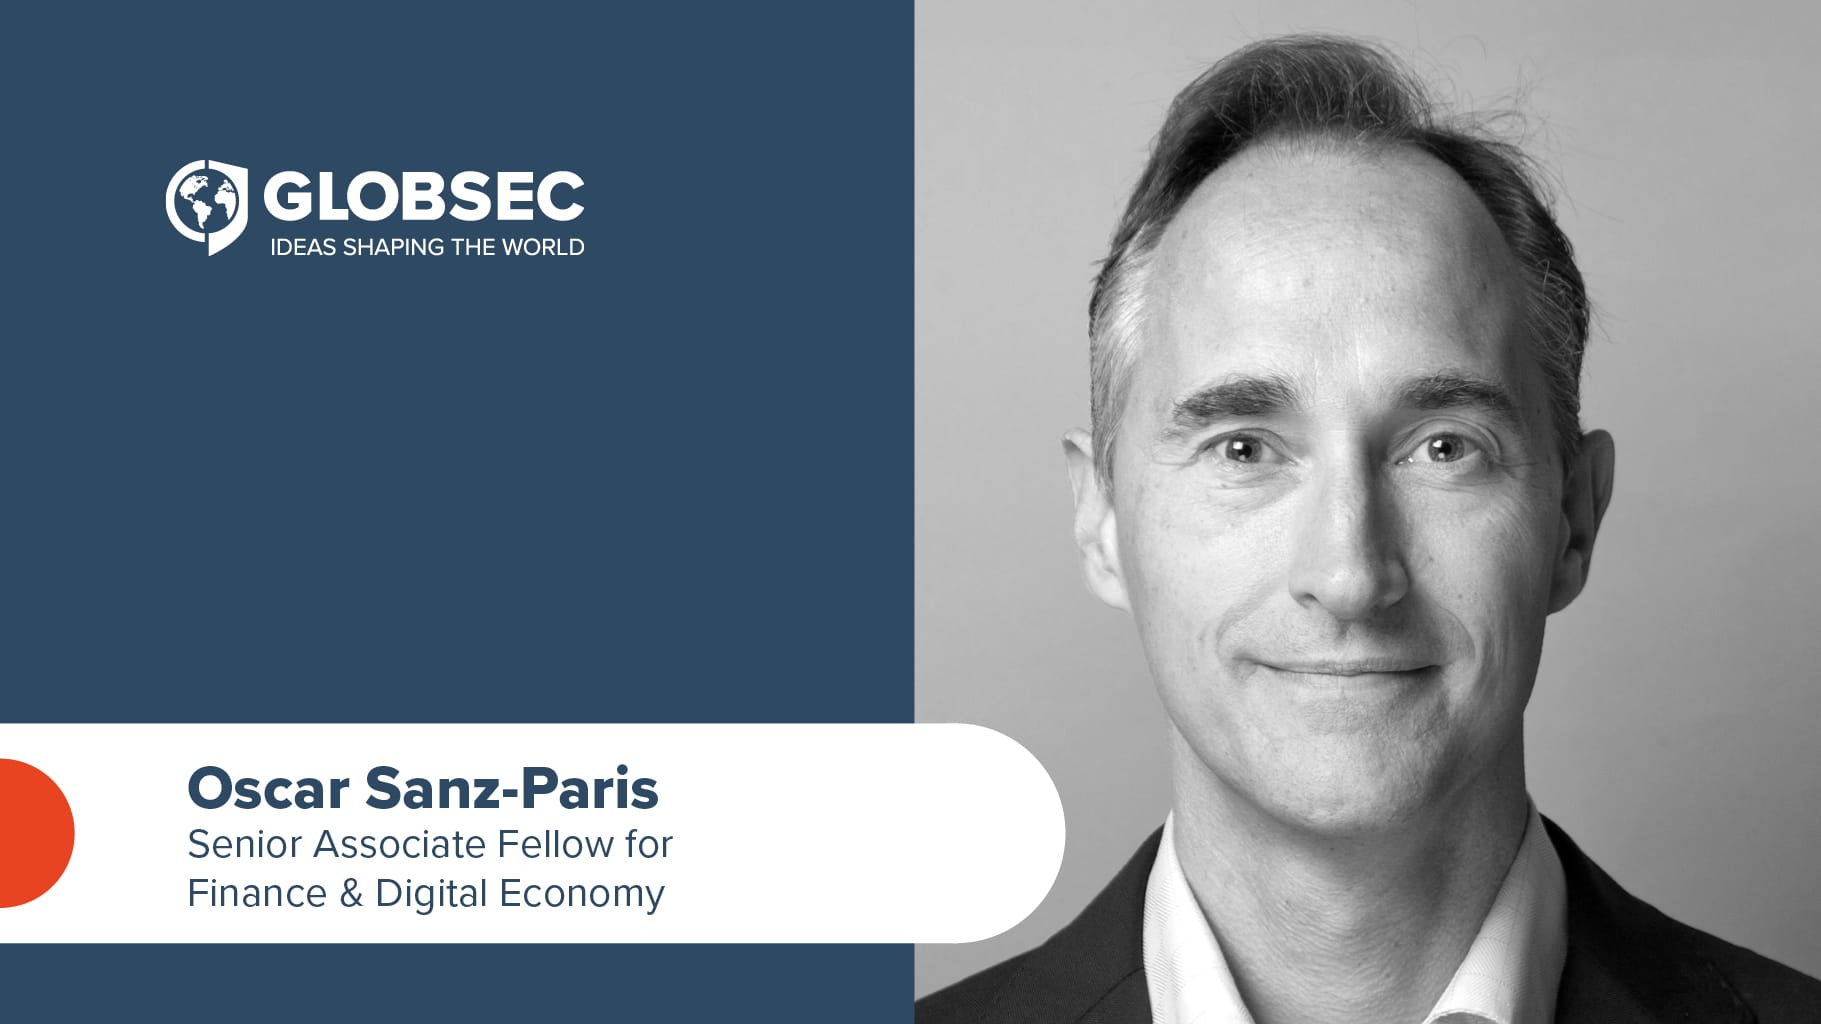 Oscar Sanz-Paris becomes GLOBSEC's Senior Associate Fellow for Finance & Digital Economy